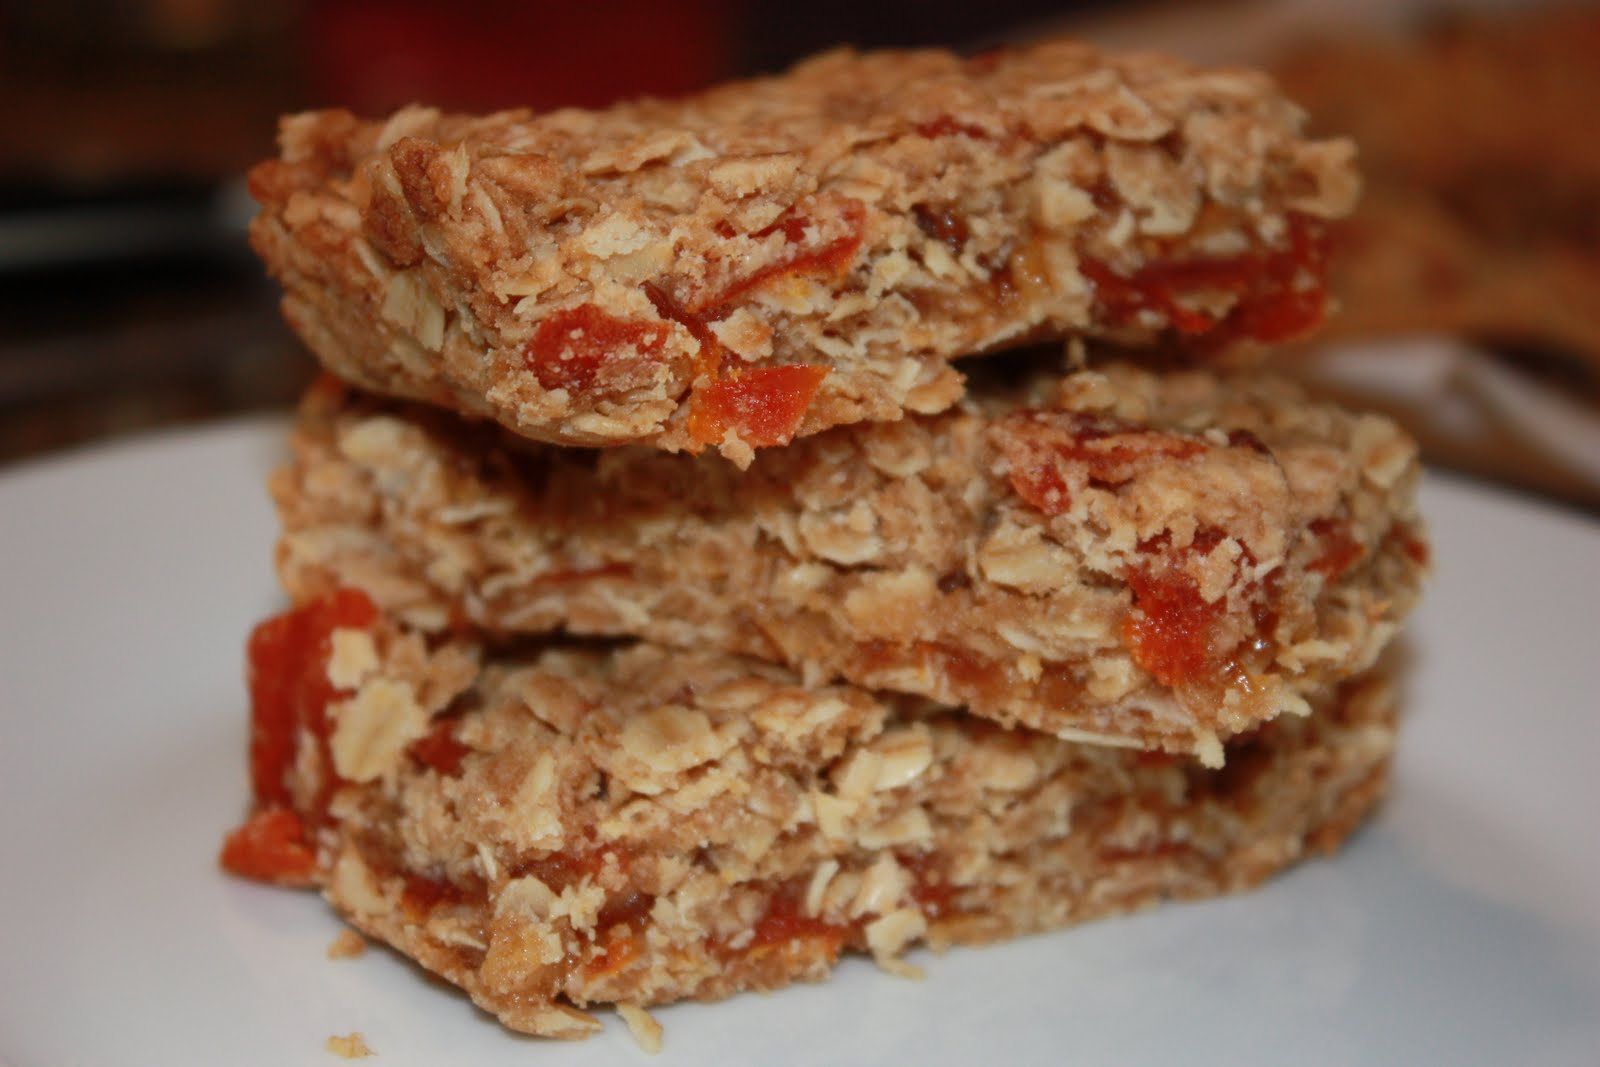 Hungry For More: Snack Time! Apricot Oatmeal Bars